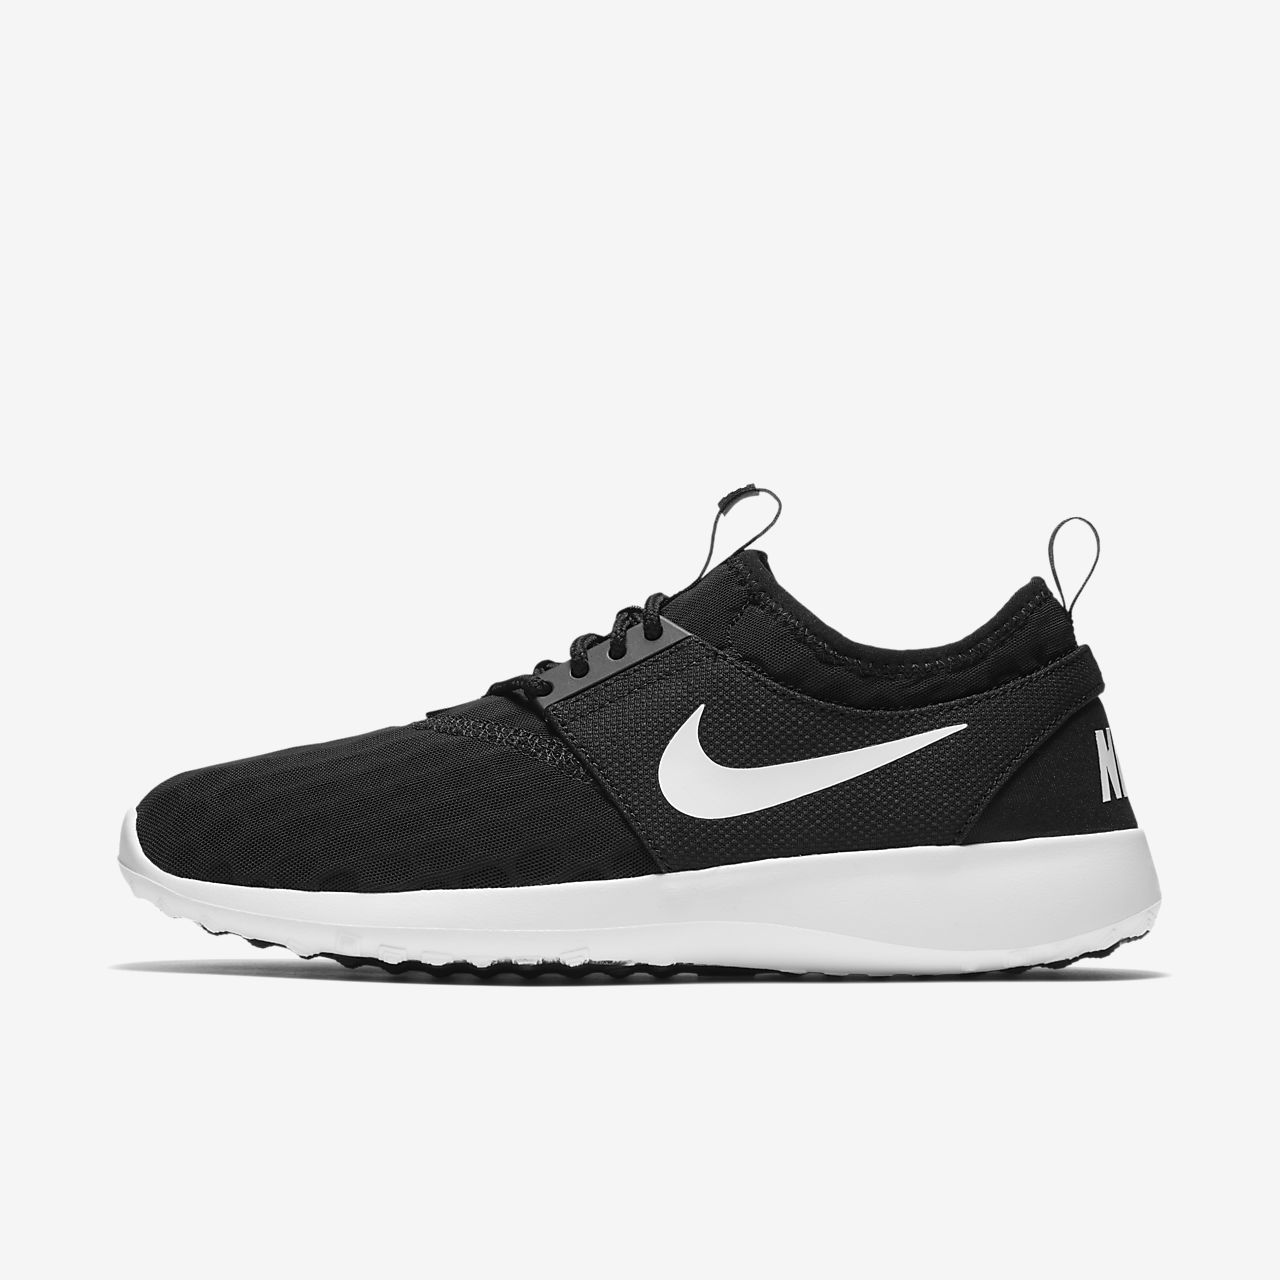 2785ae46395 Low Resolution Nike Juvenate Women s Shoe Nike Juvenate Women s Shoe